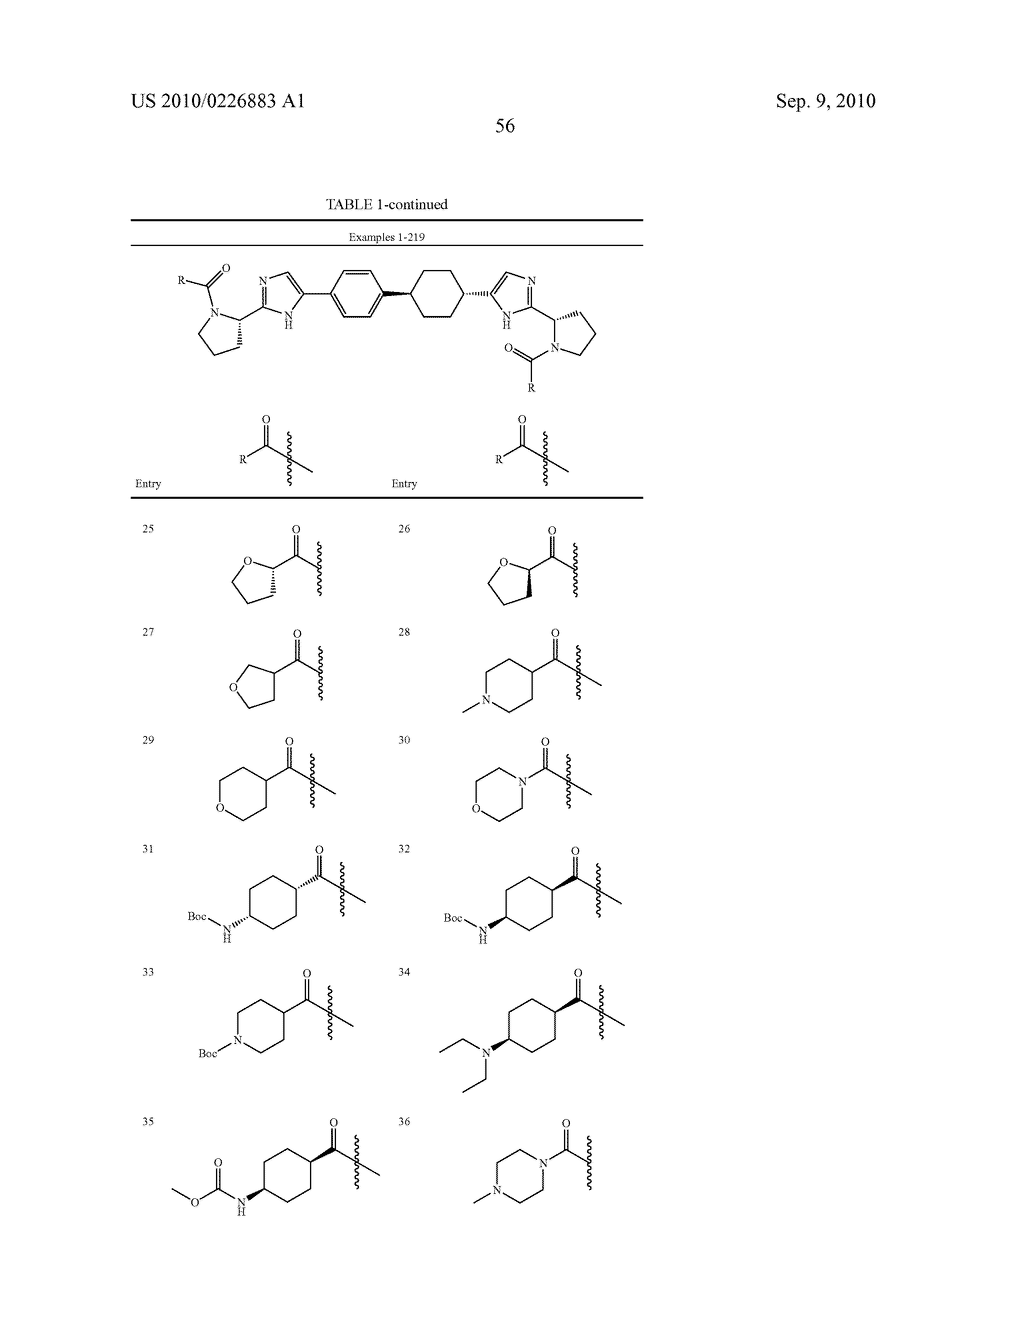 LINKED DIIMIDAZOLE DERIVATIVES - diagram, schematic, and image 57